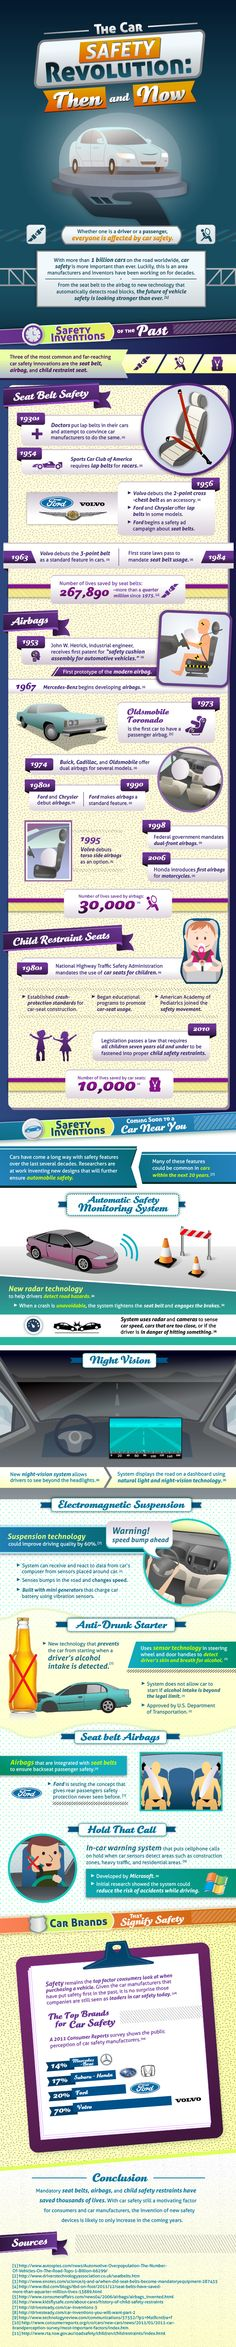 The evolution of #carsafety features